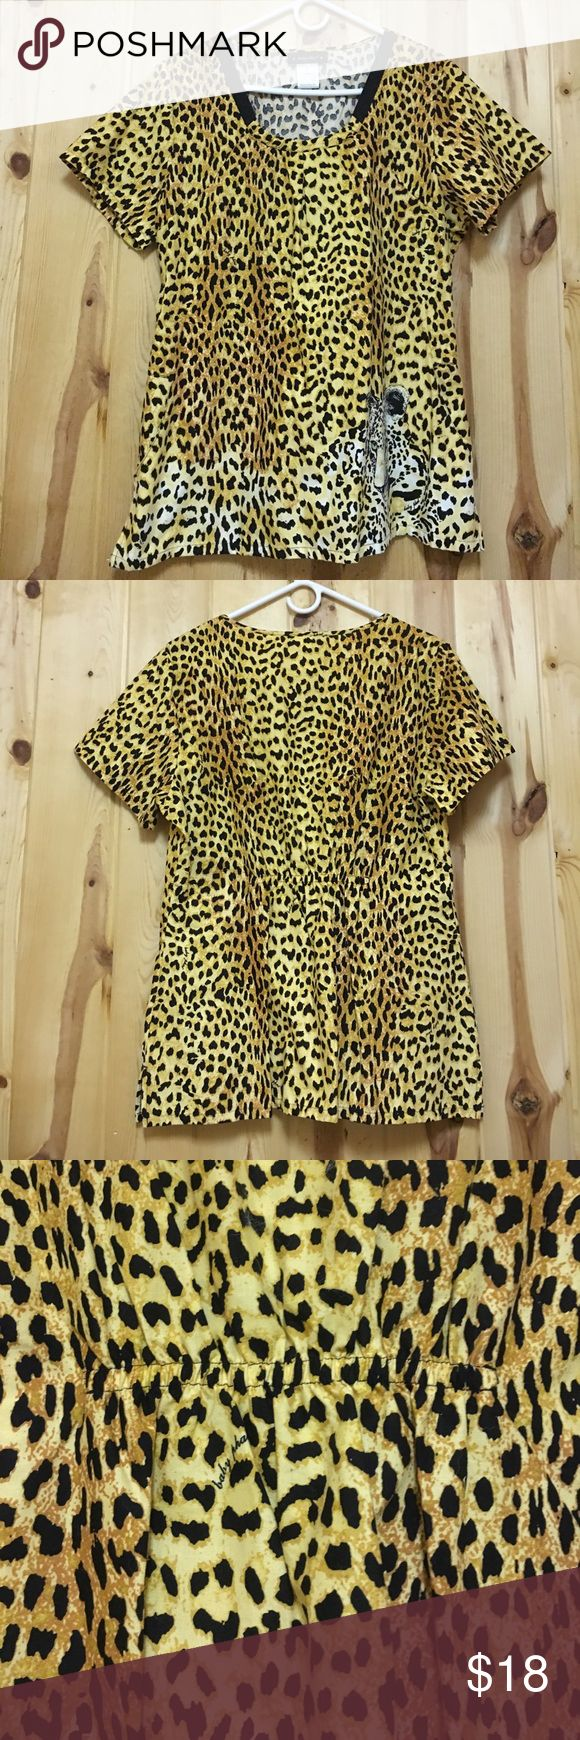 Baby Phat Scrub Top Large NWOT Great Price Baby Phat Scrub Top Large NWOT Top has 2 Front Pockets and Elastic Waist in back Has Tiger on left pocket Beautiful Scrub Top New Price never lower Thanks so much for stopping Baby Phat Tops